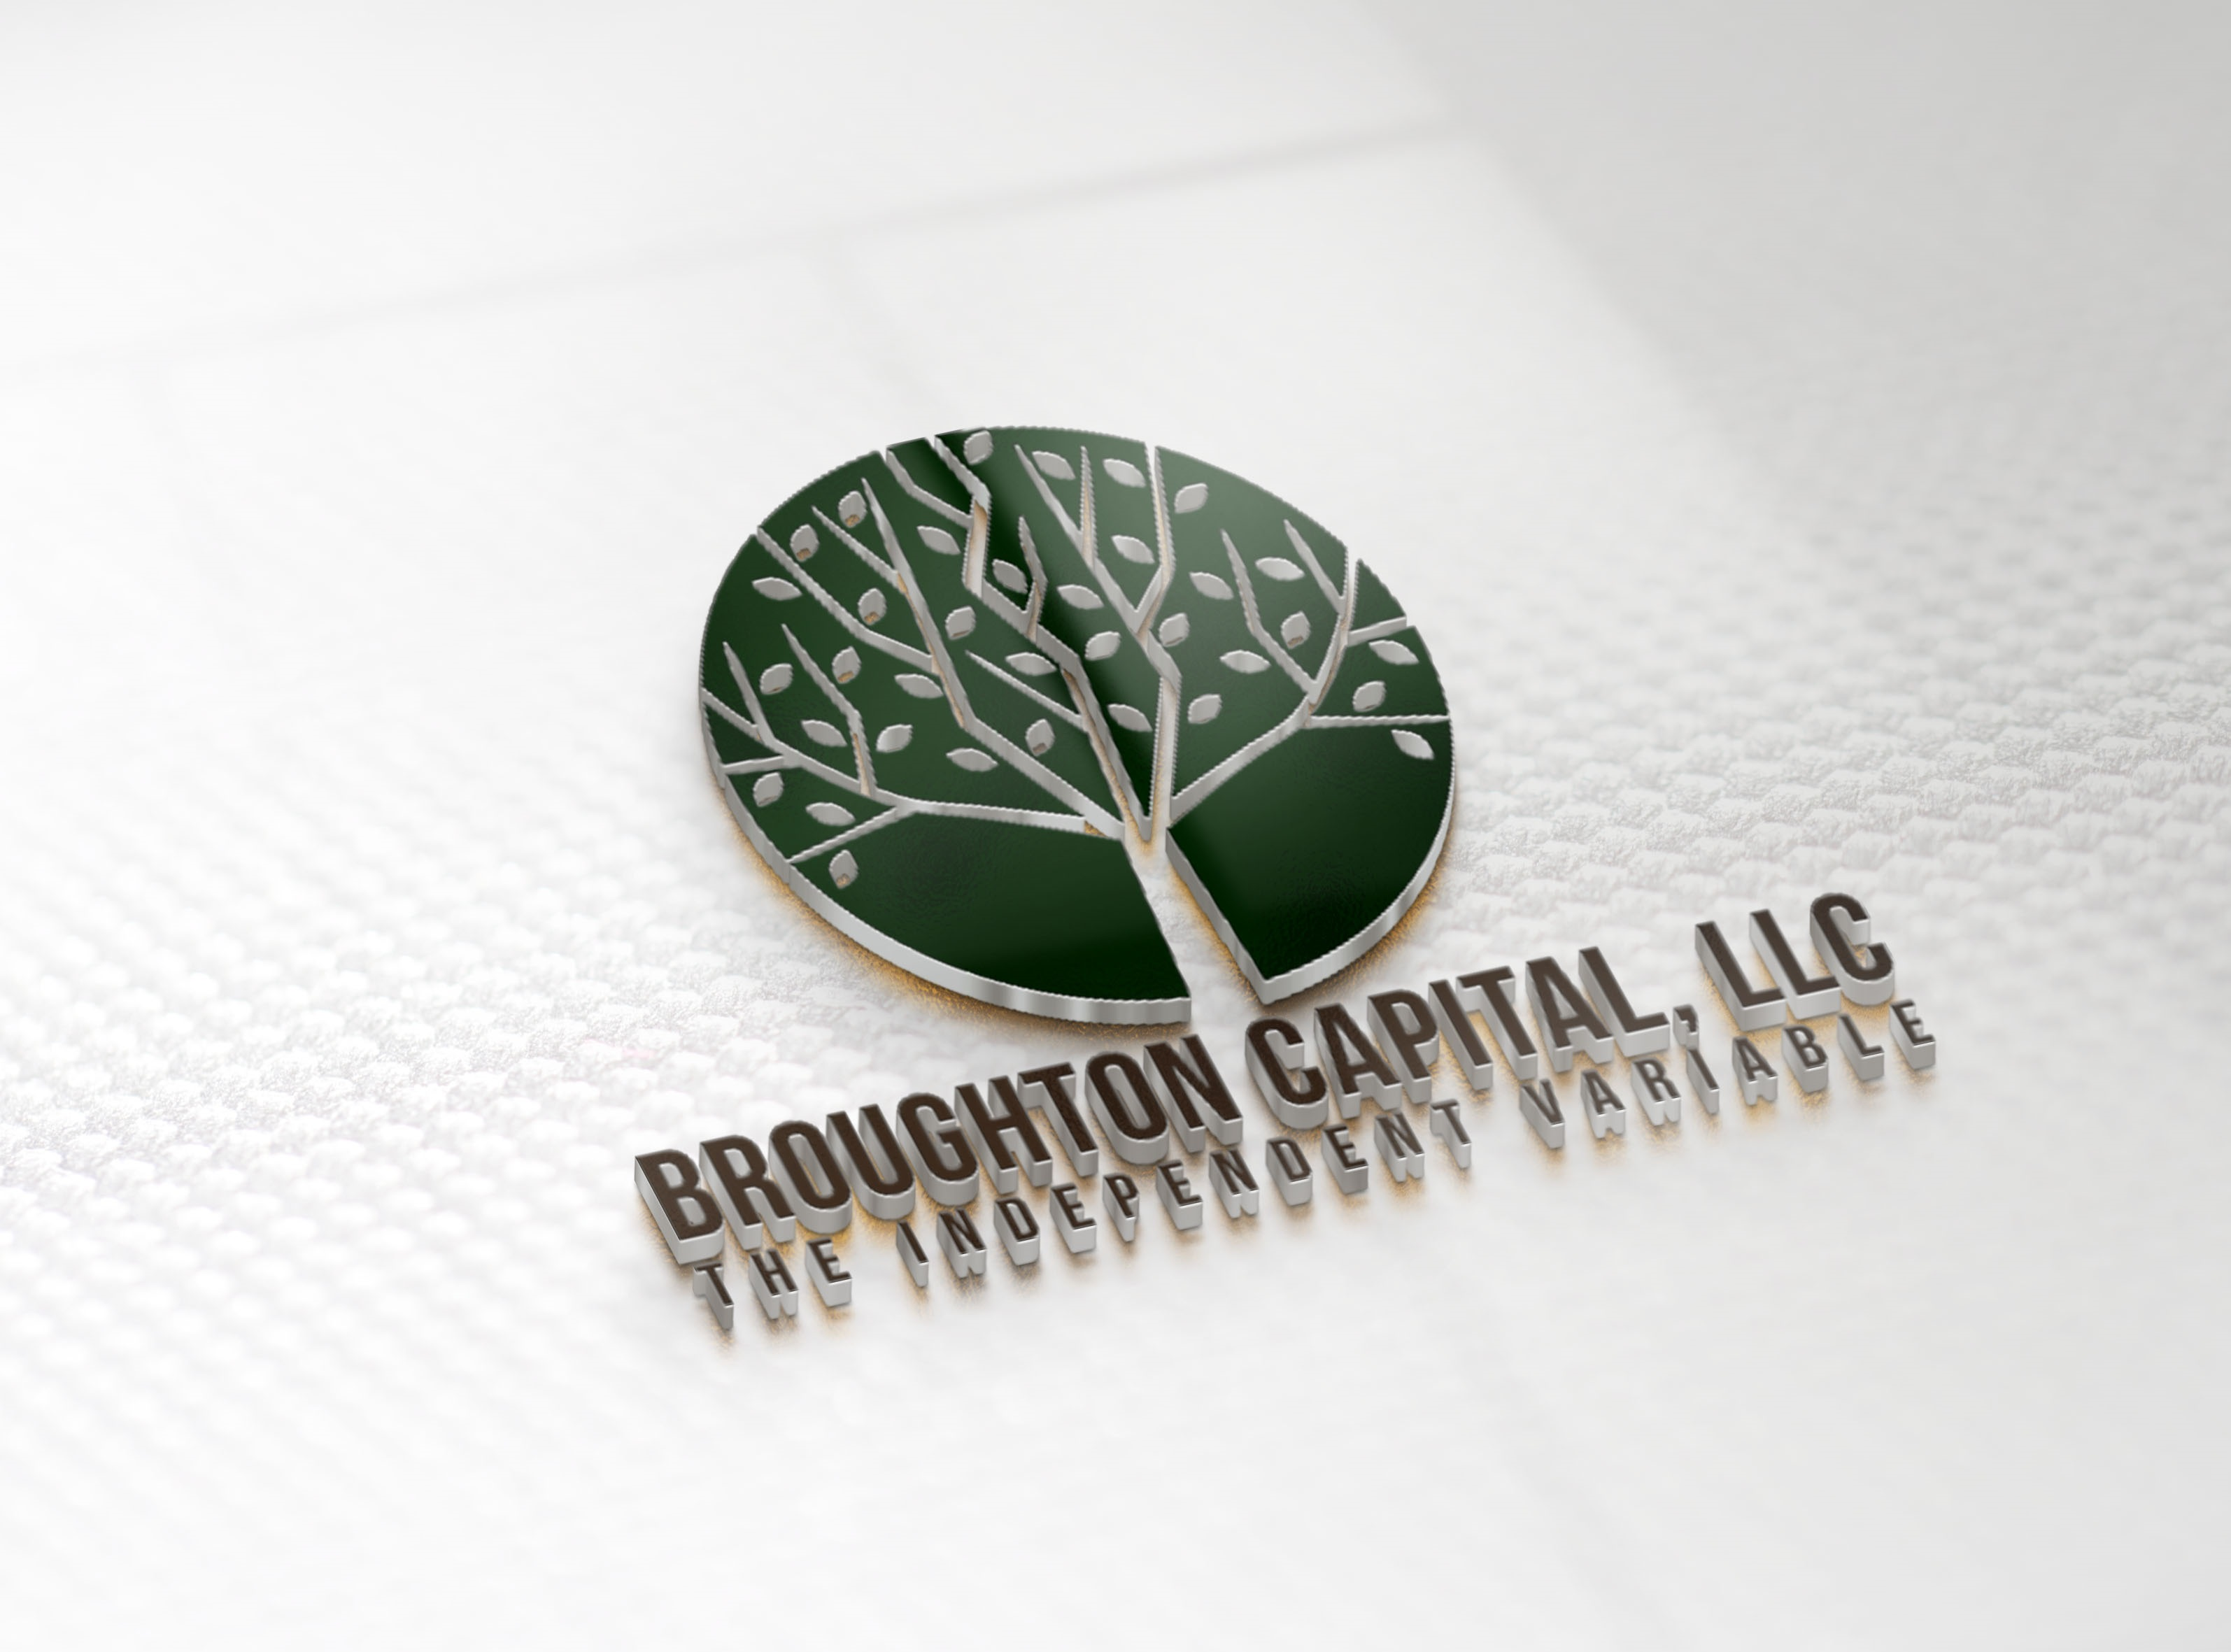 Broughton Capital 3D logo